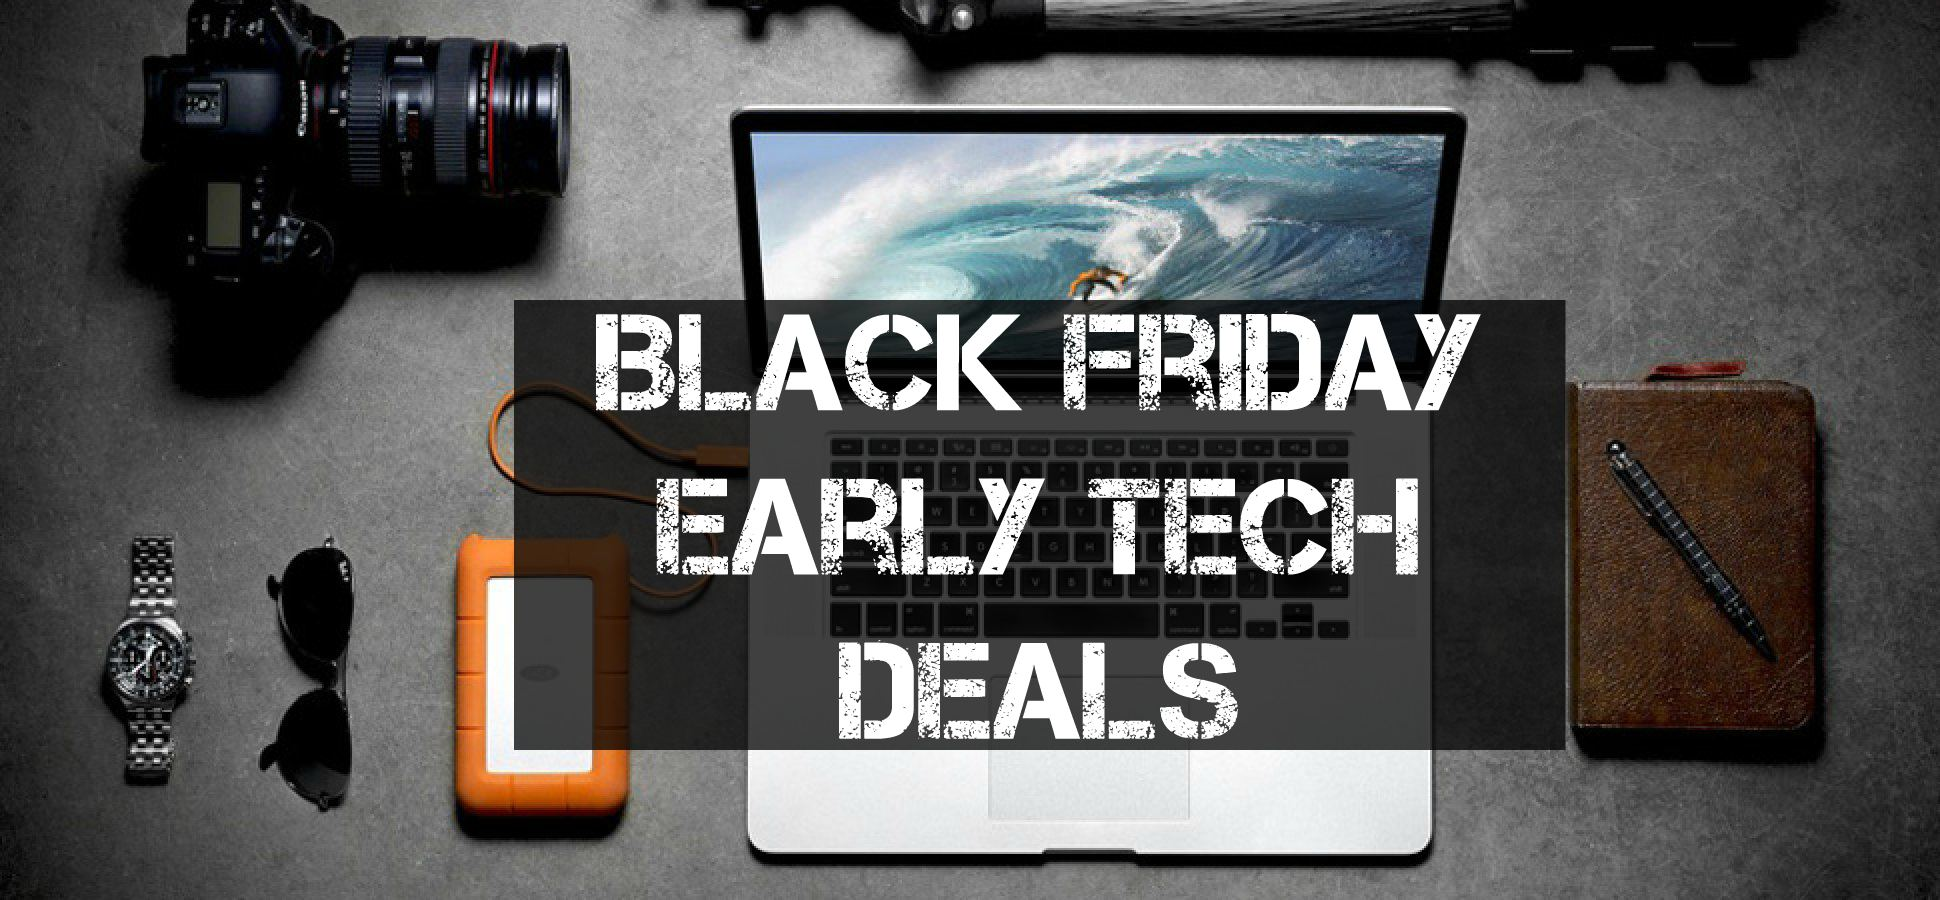 Black Friday Early Tech Deals 2015